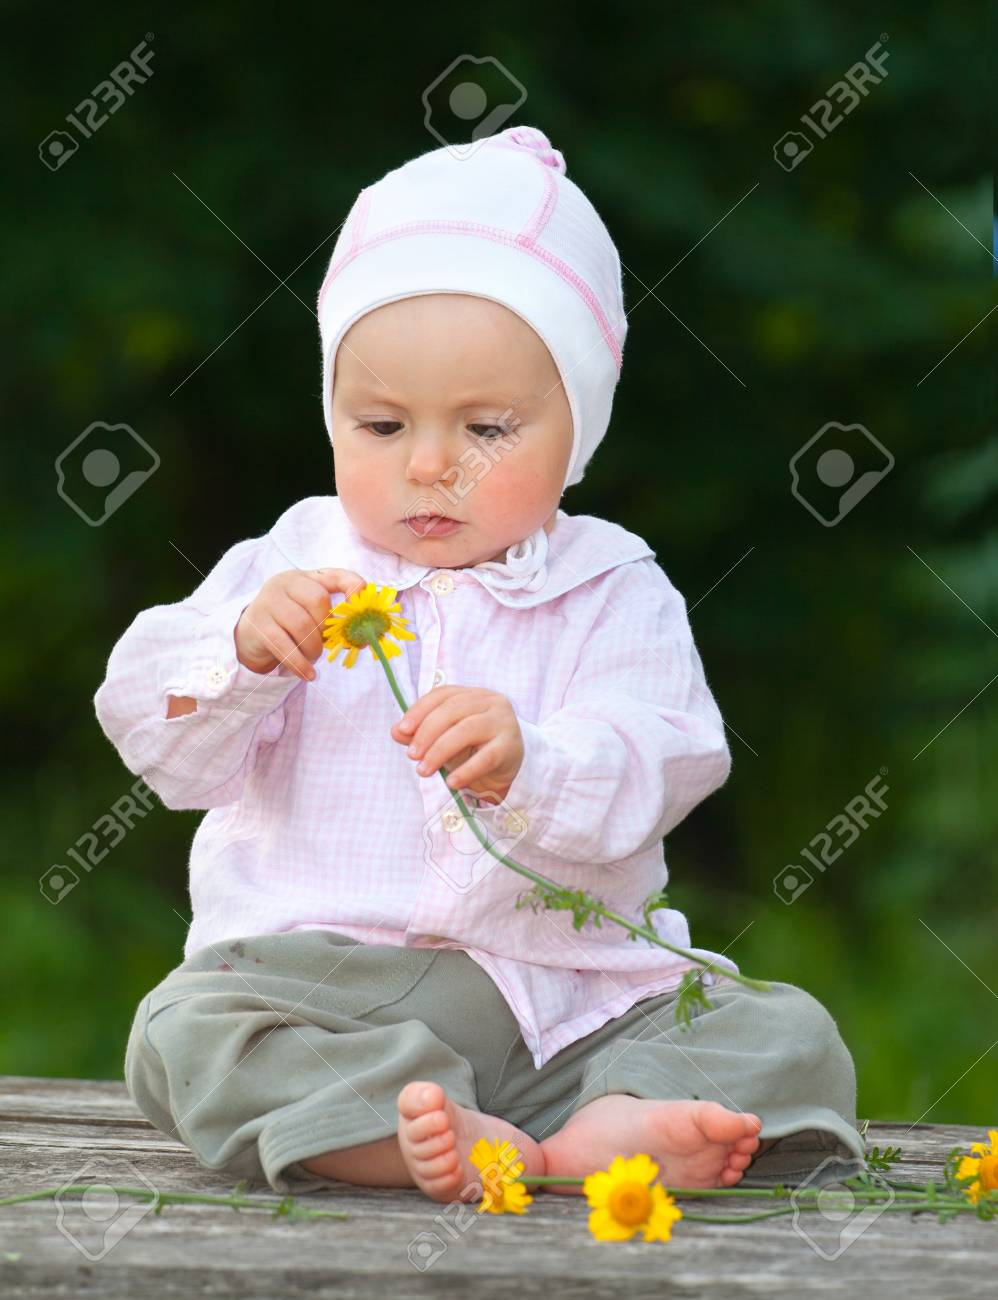 Adorable one-year baby sitting on the table with flowers Stock Photo - 13055910